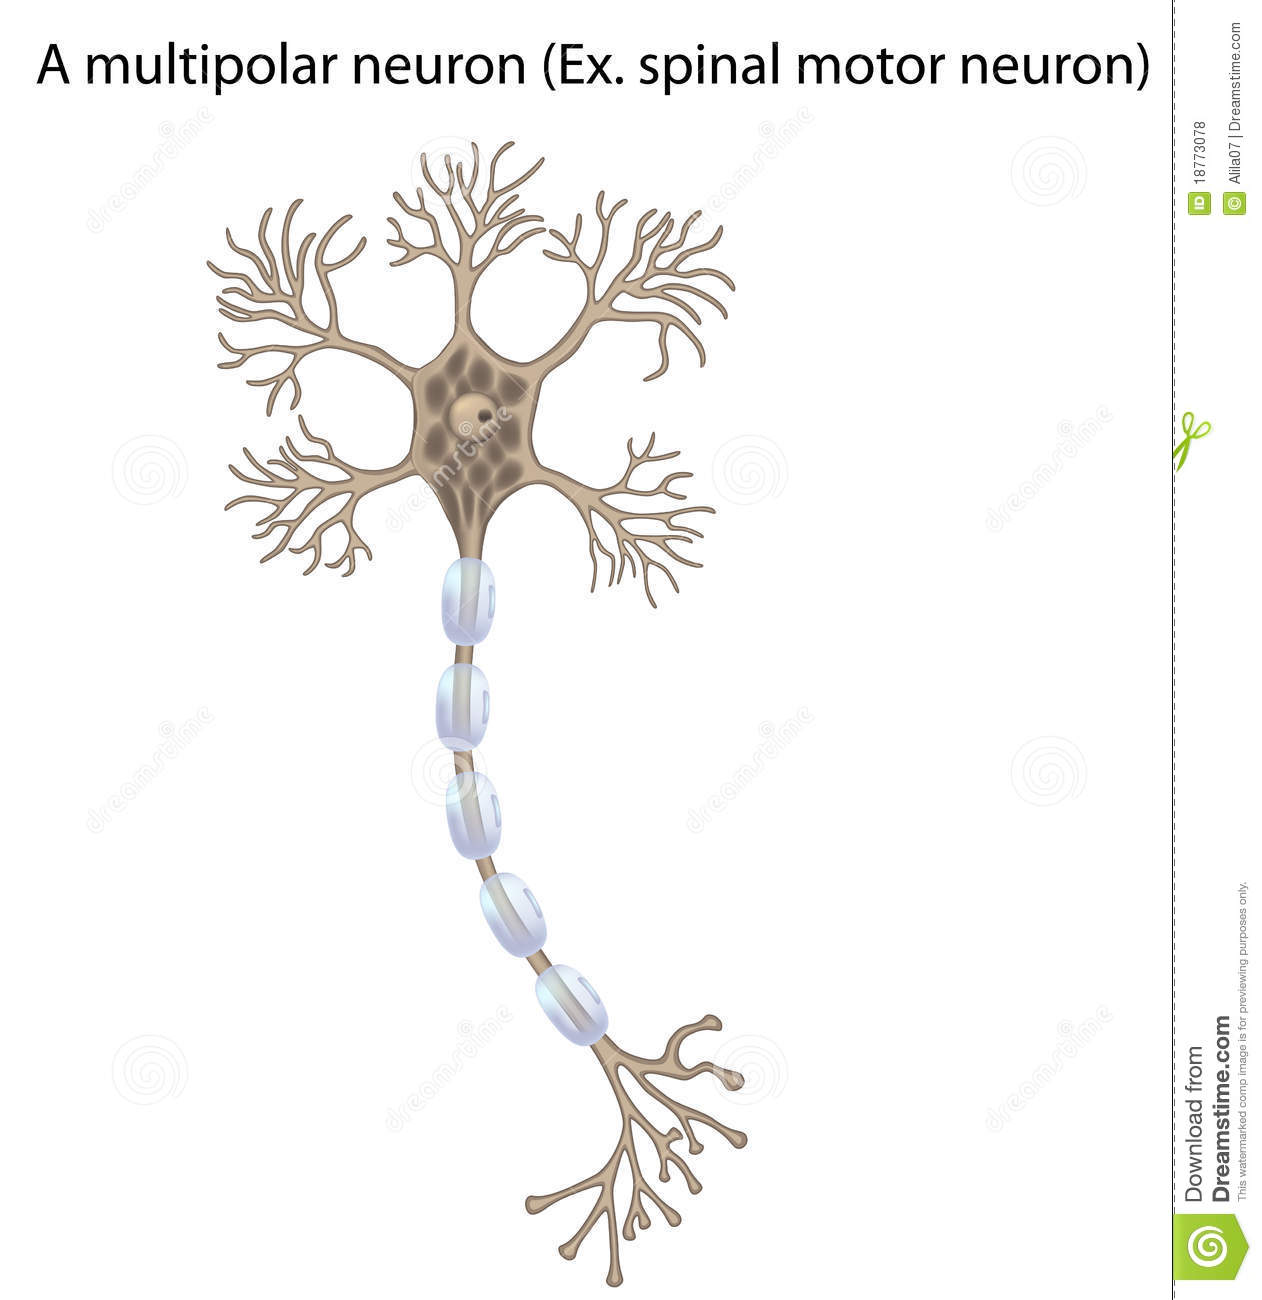 synapse diagram unlabeled dodge durango fuse box motor neuron detail and accurate non labeled vs royalty